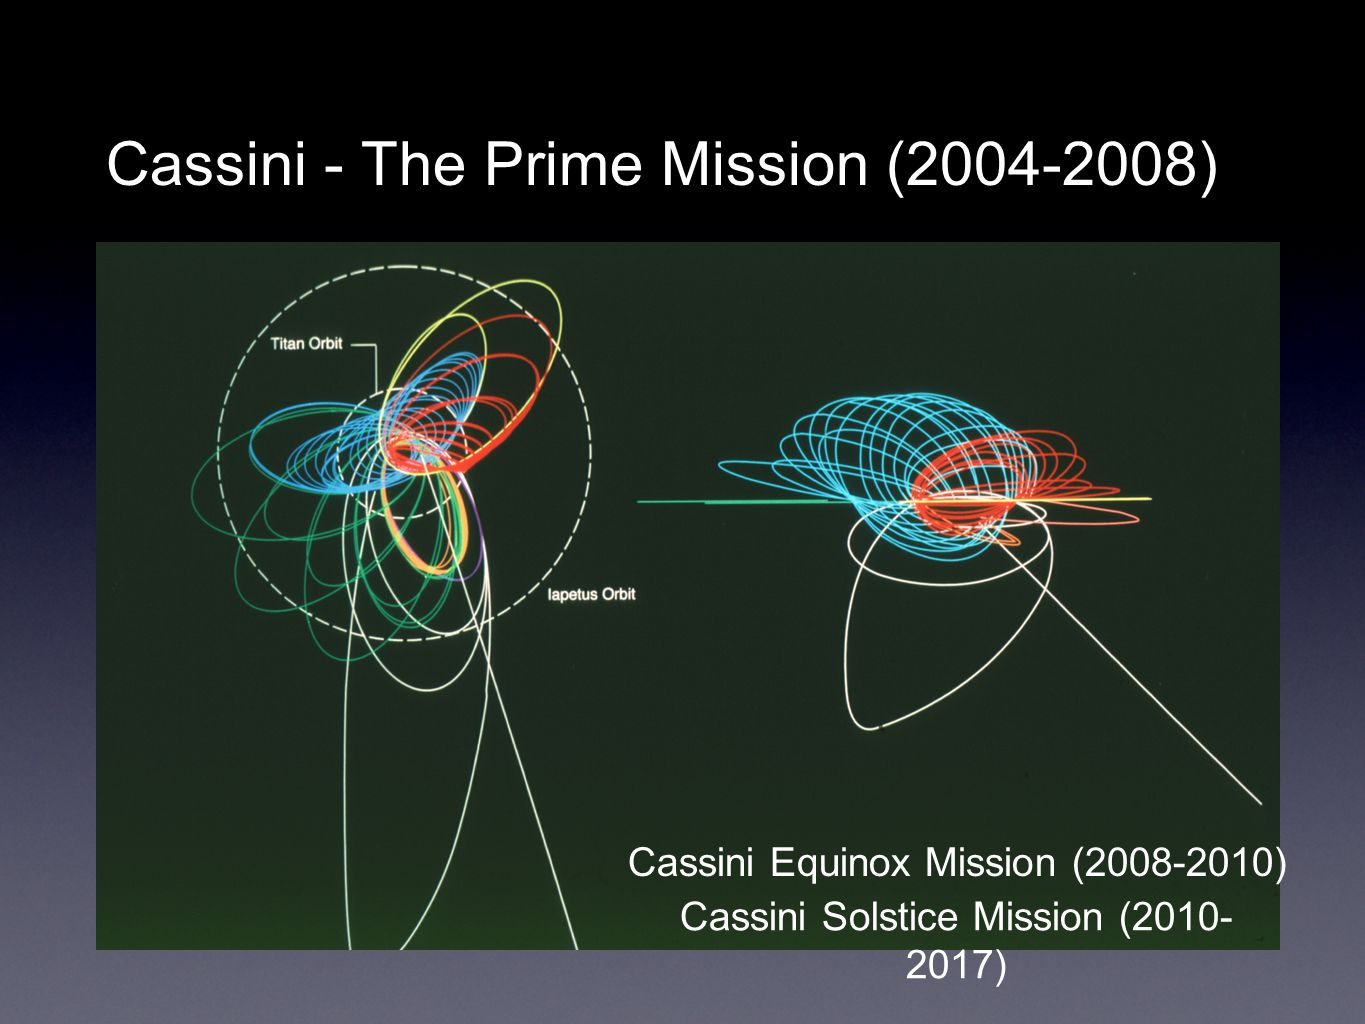 Where is Cassini Now ? Go to http://saturn.jpl.nasa.gov/mission/presentposition/